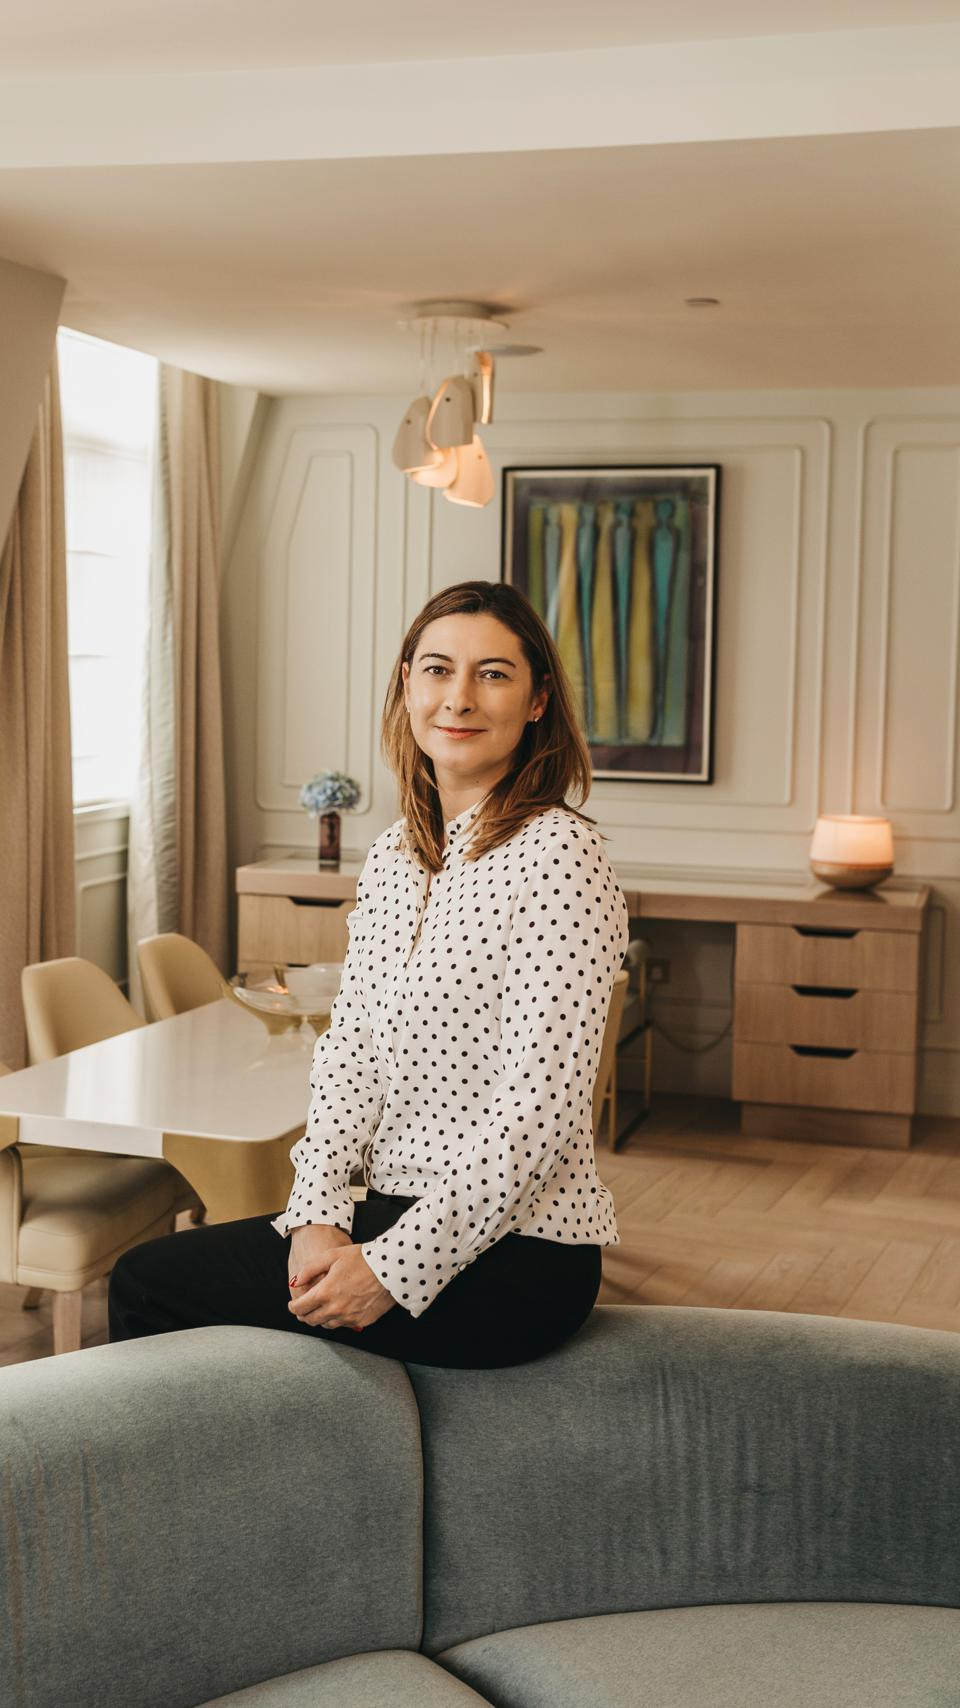 Janine Marshall, General Manager at One Aldwych